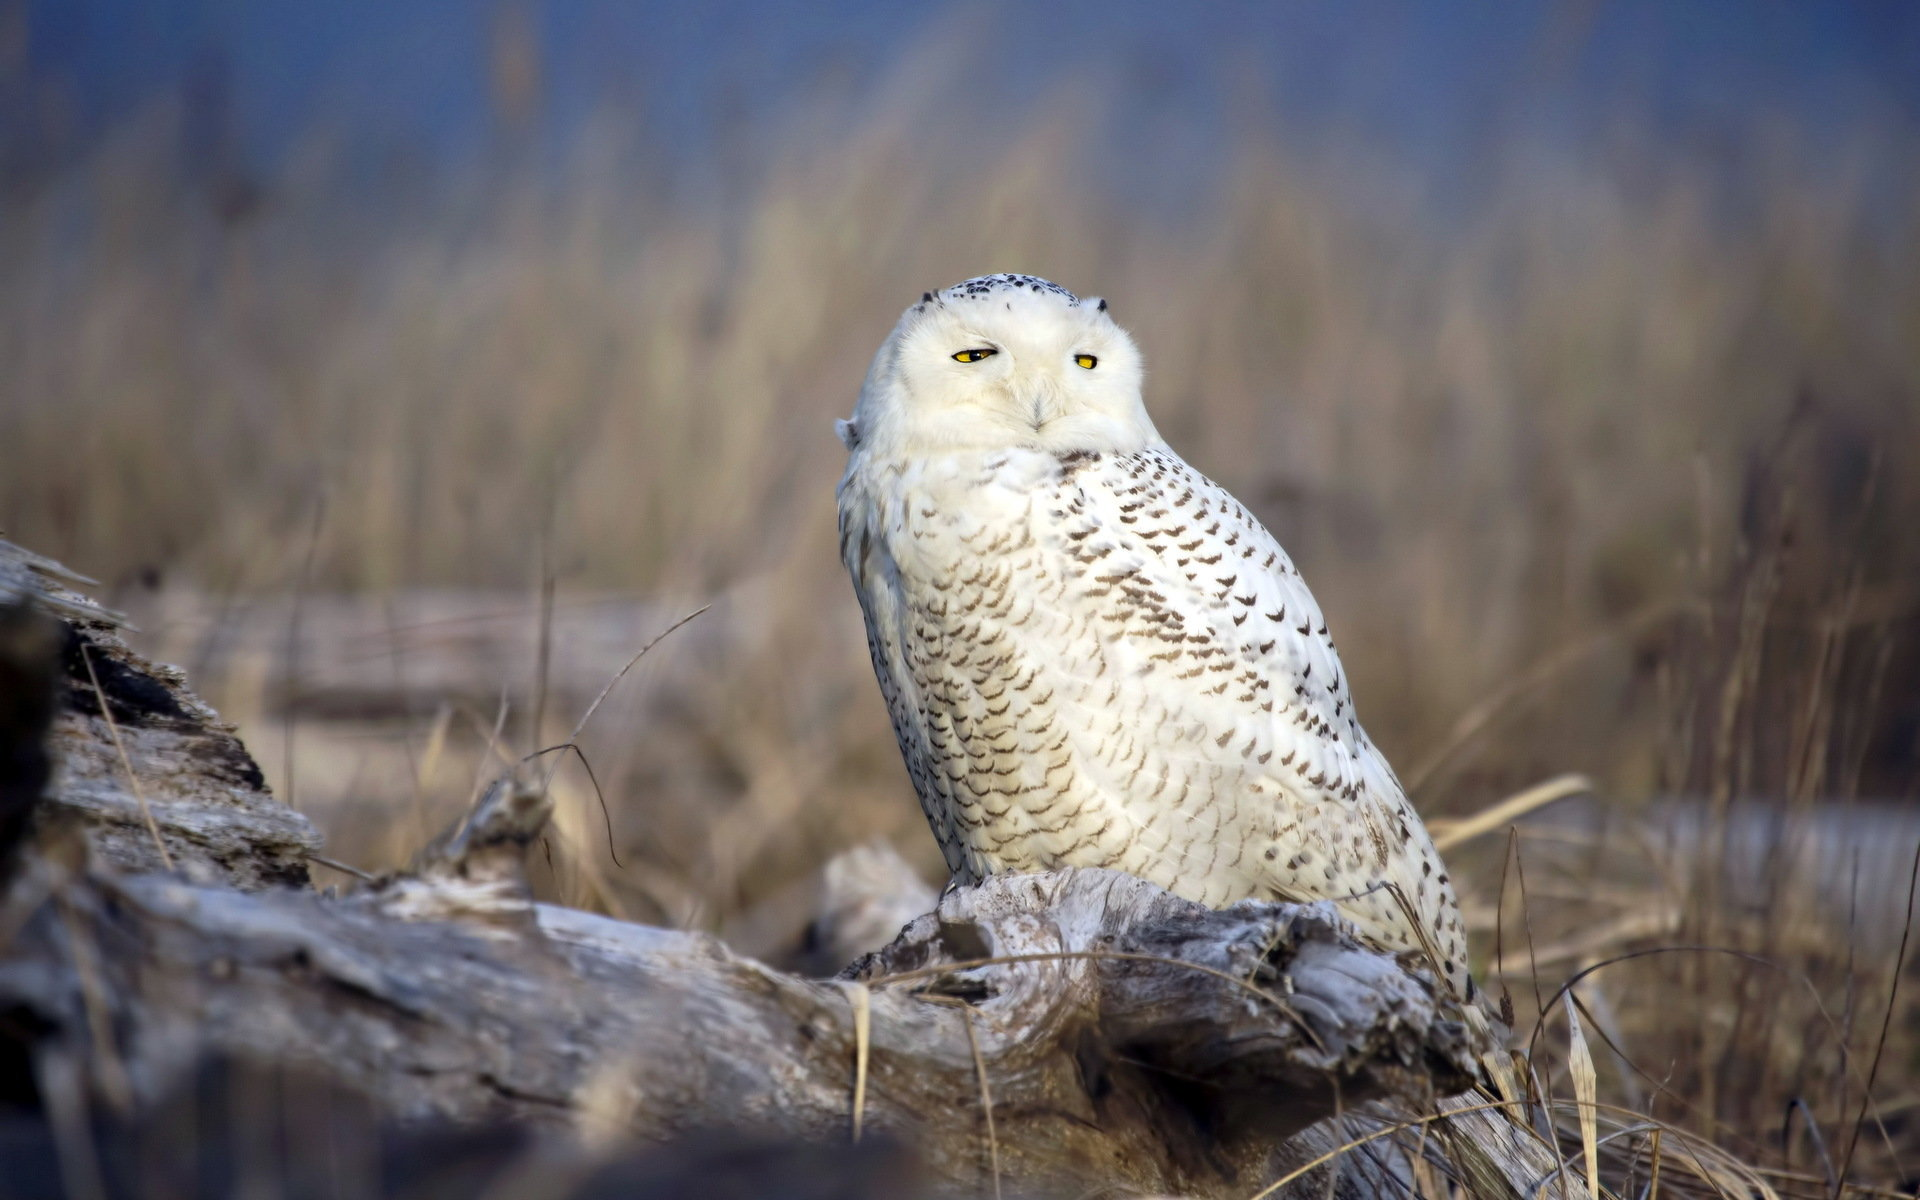 Download hd 1920x1200 Snowy Owl PC background ID:26810 for free